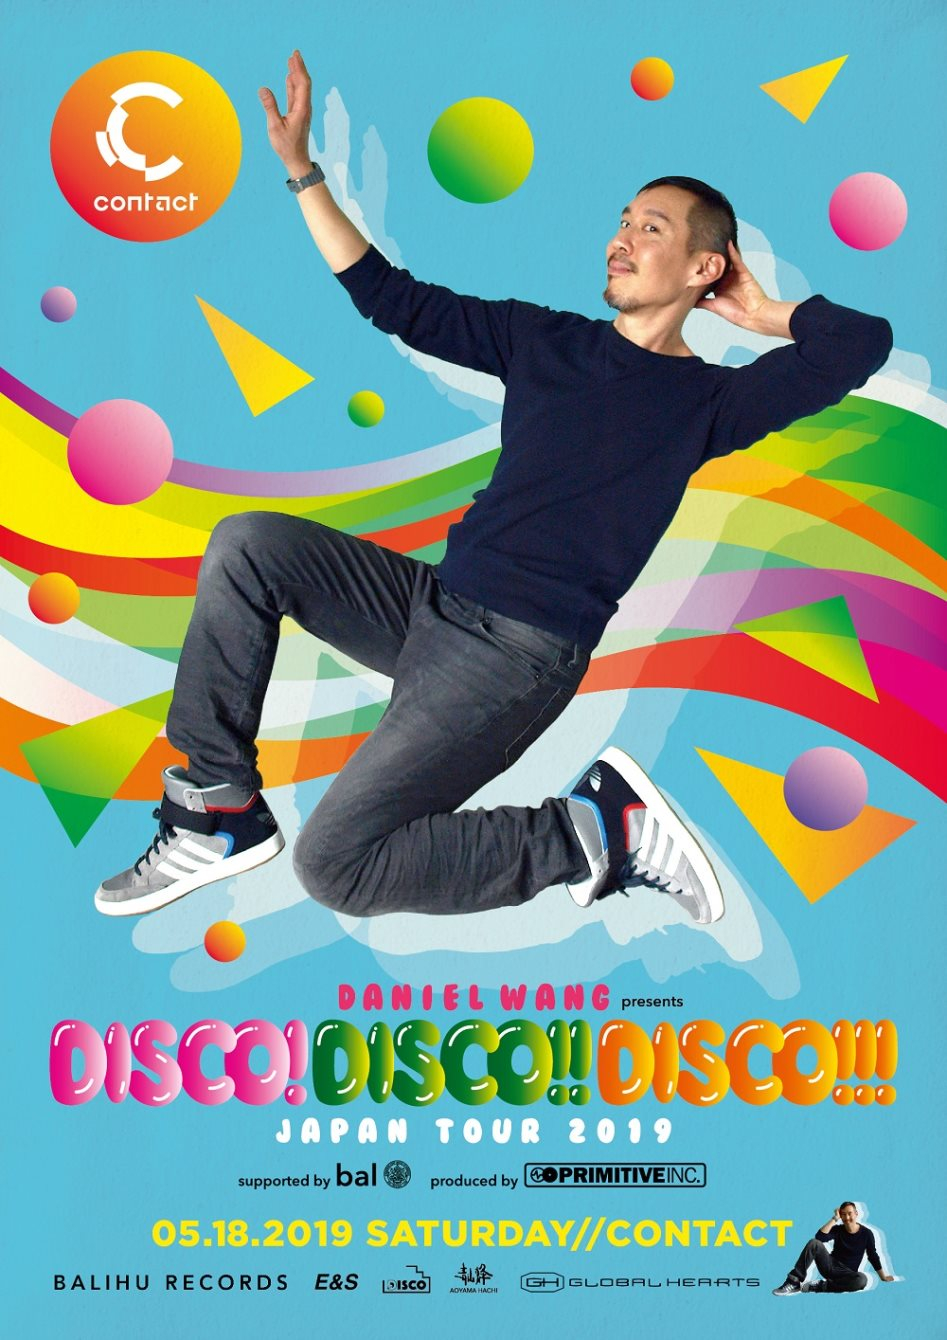 Daniel Wang presents DISCO! DISCO! DISCO! Supported by bal - Flyer front